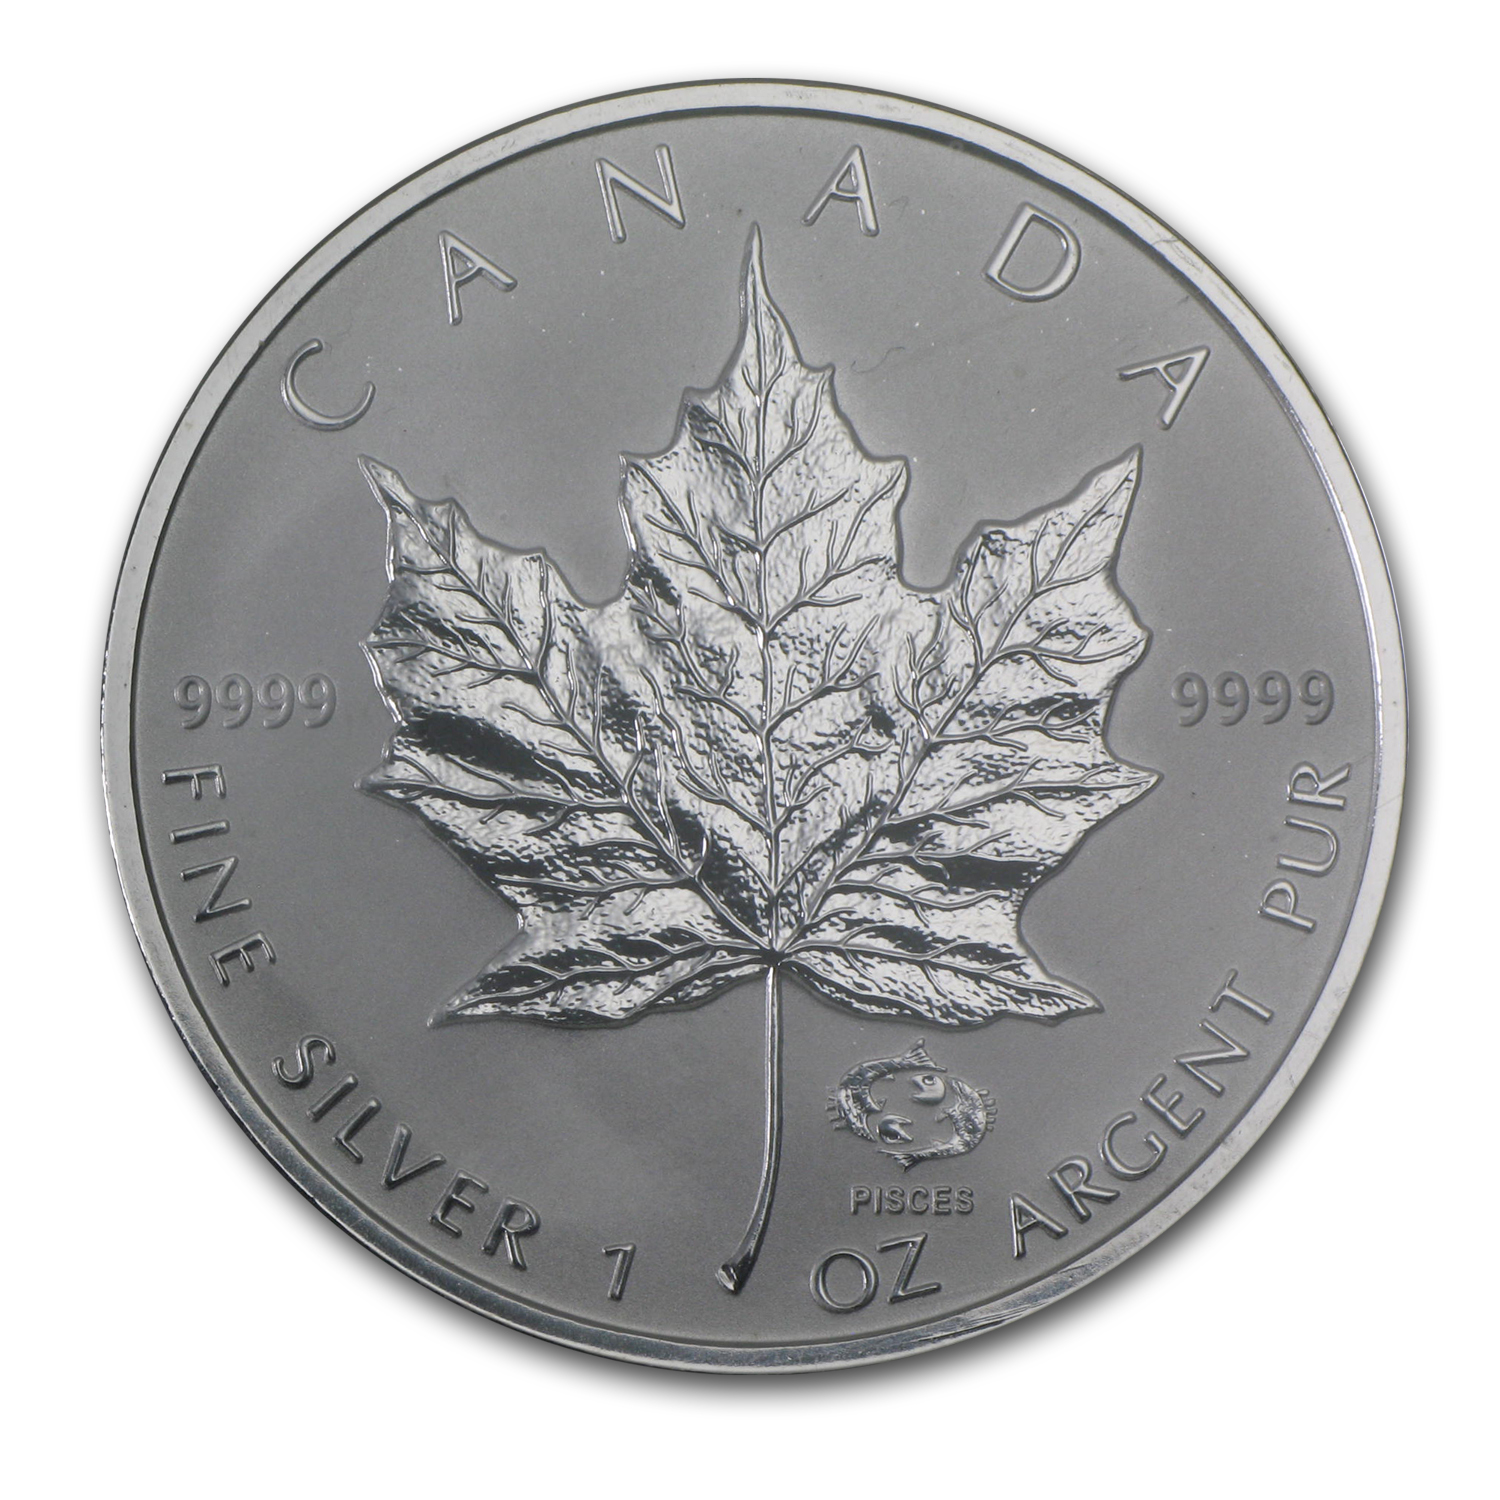 2004 Canada 1 oz Silver Maple Leaf Pisces Zodiac Privy